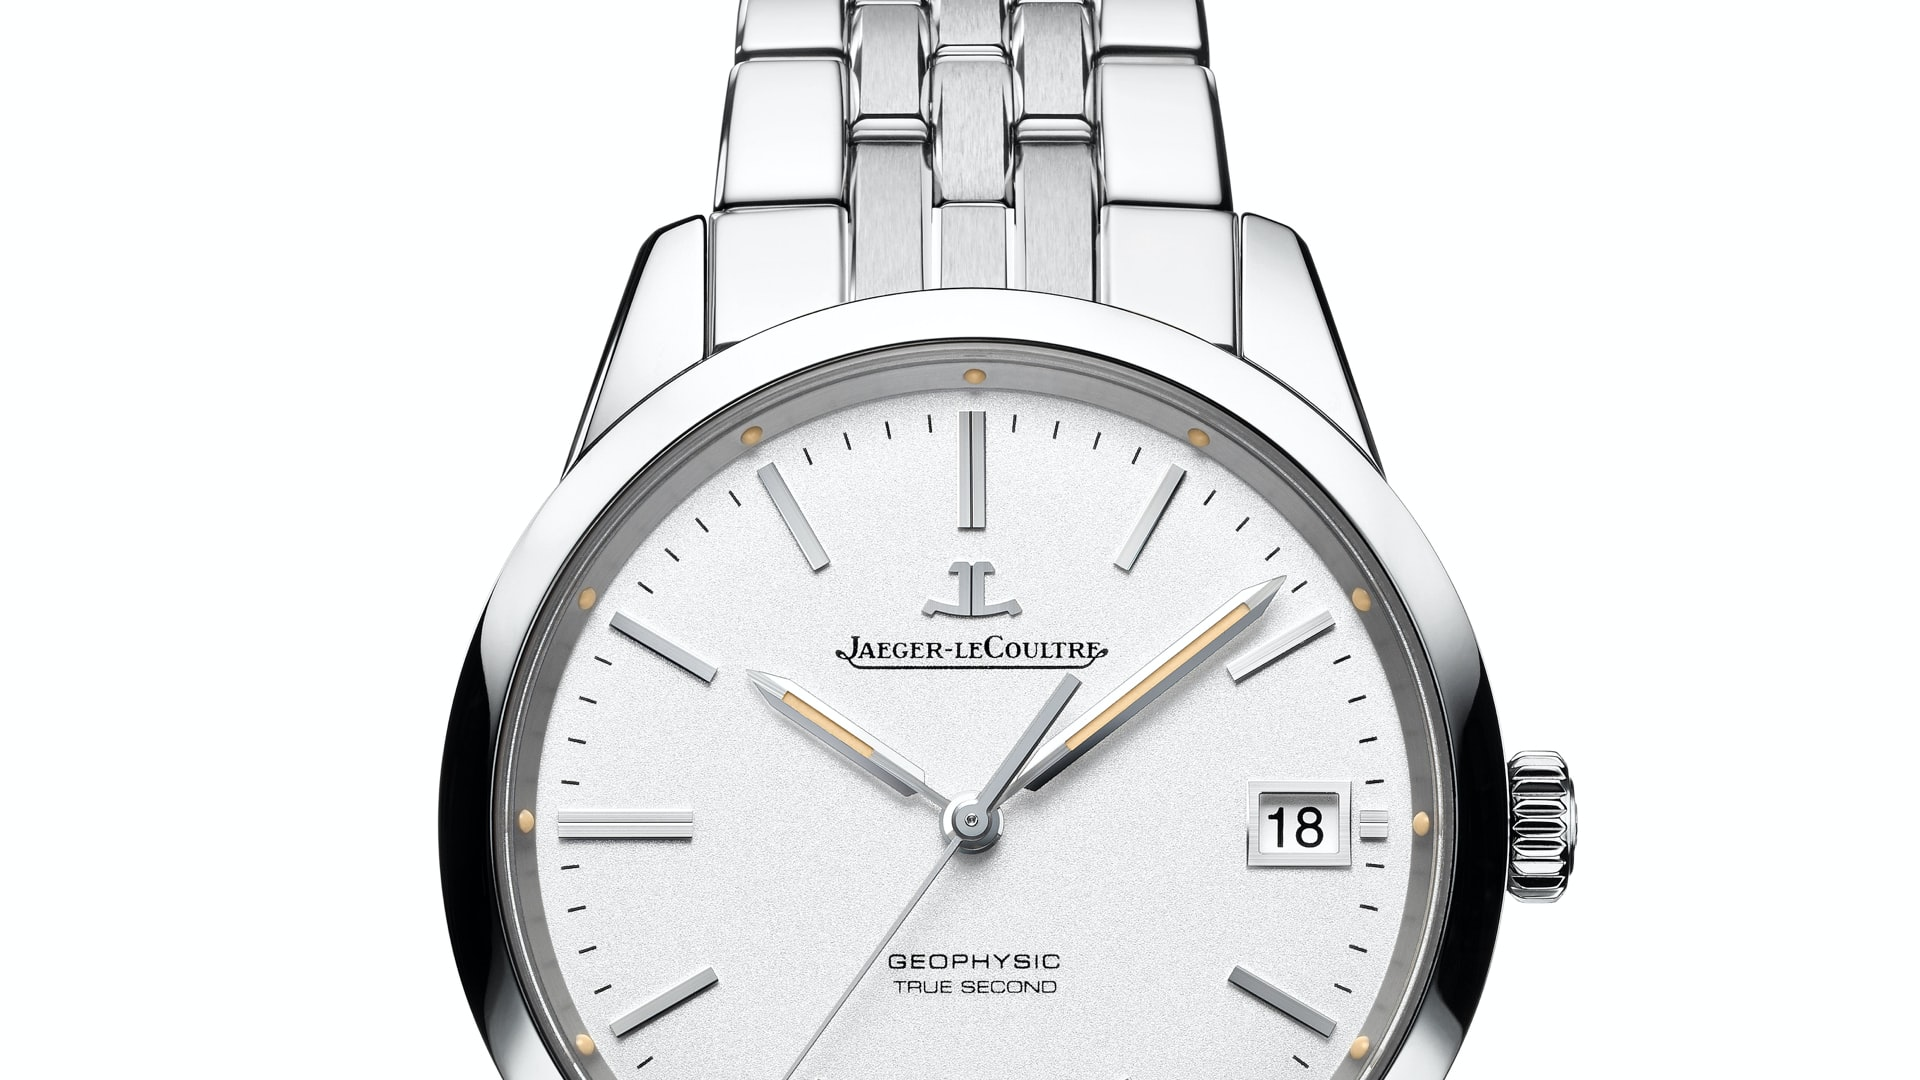 Introducing: The New Interchangeable And Easily Adjustable Bracelet For the Jaeger-LeCoultre Geophysic True-Second (It's Cooler Than It Sounds)